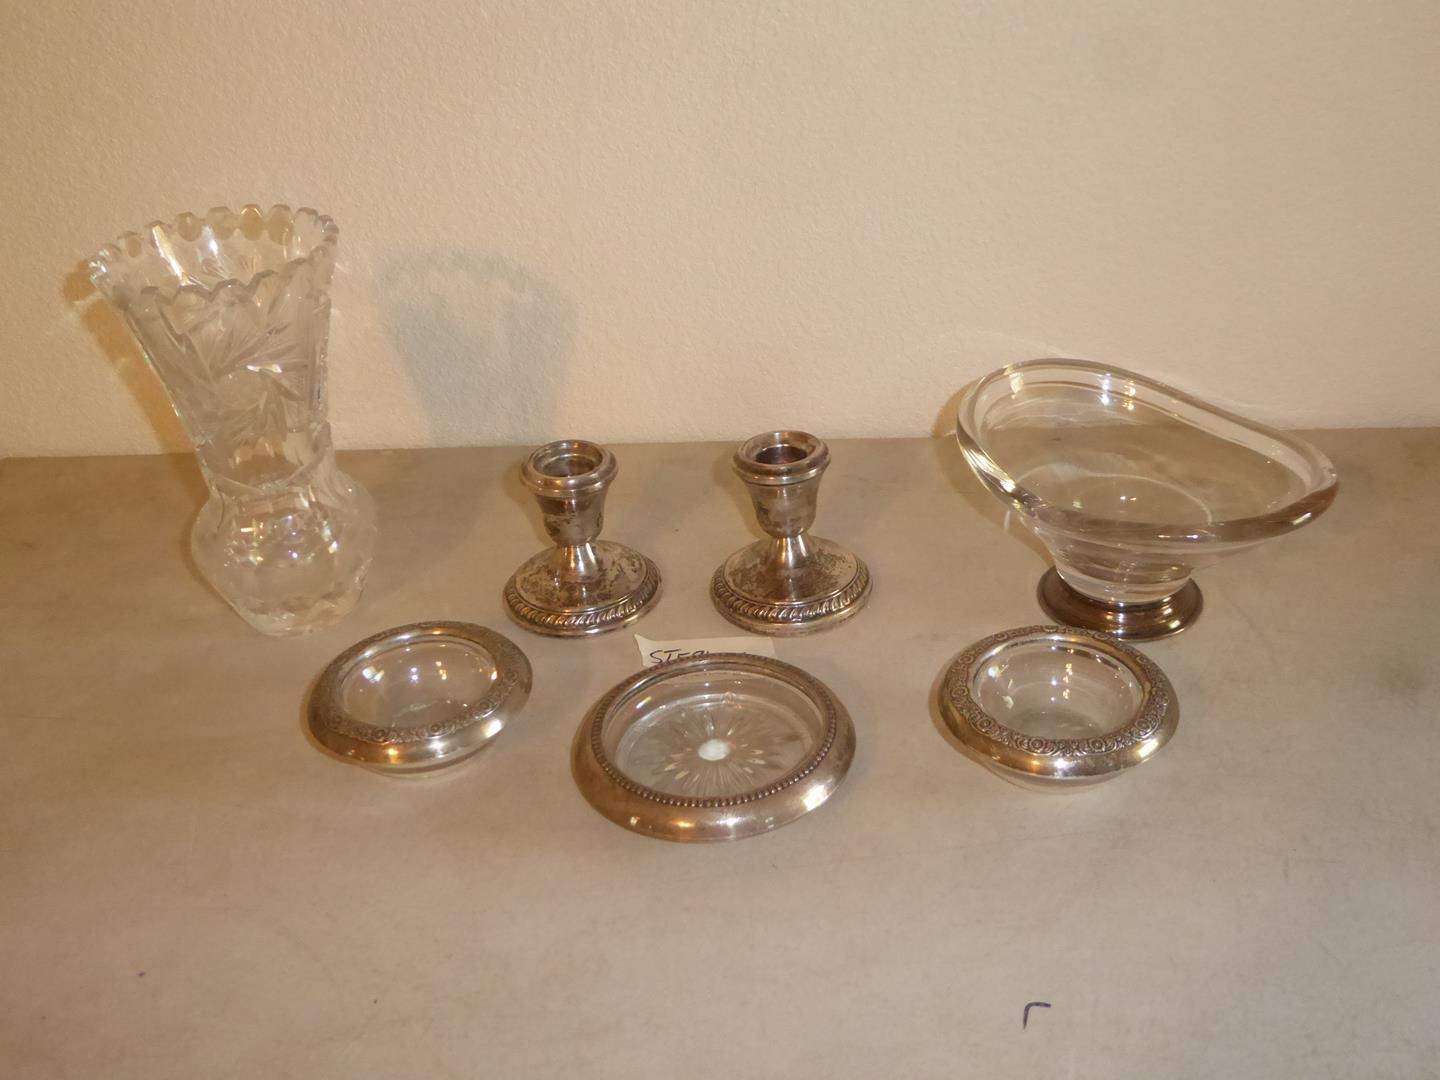 Lot # 78 - Small Cut Glass Pressed Glass Vase, Sterling Rimmed Coasters & Candle Holders (main image)